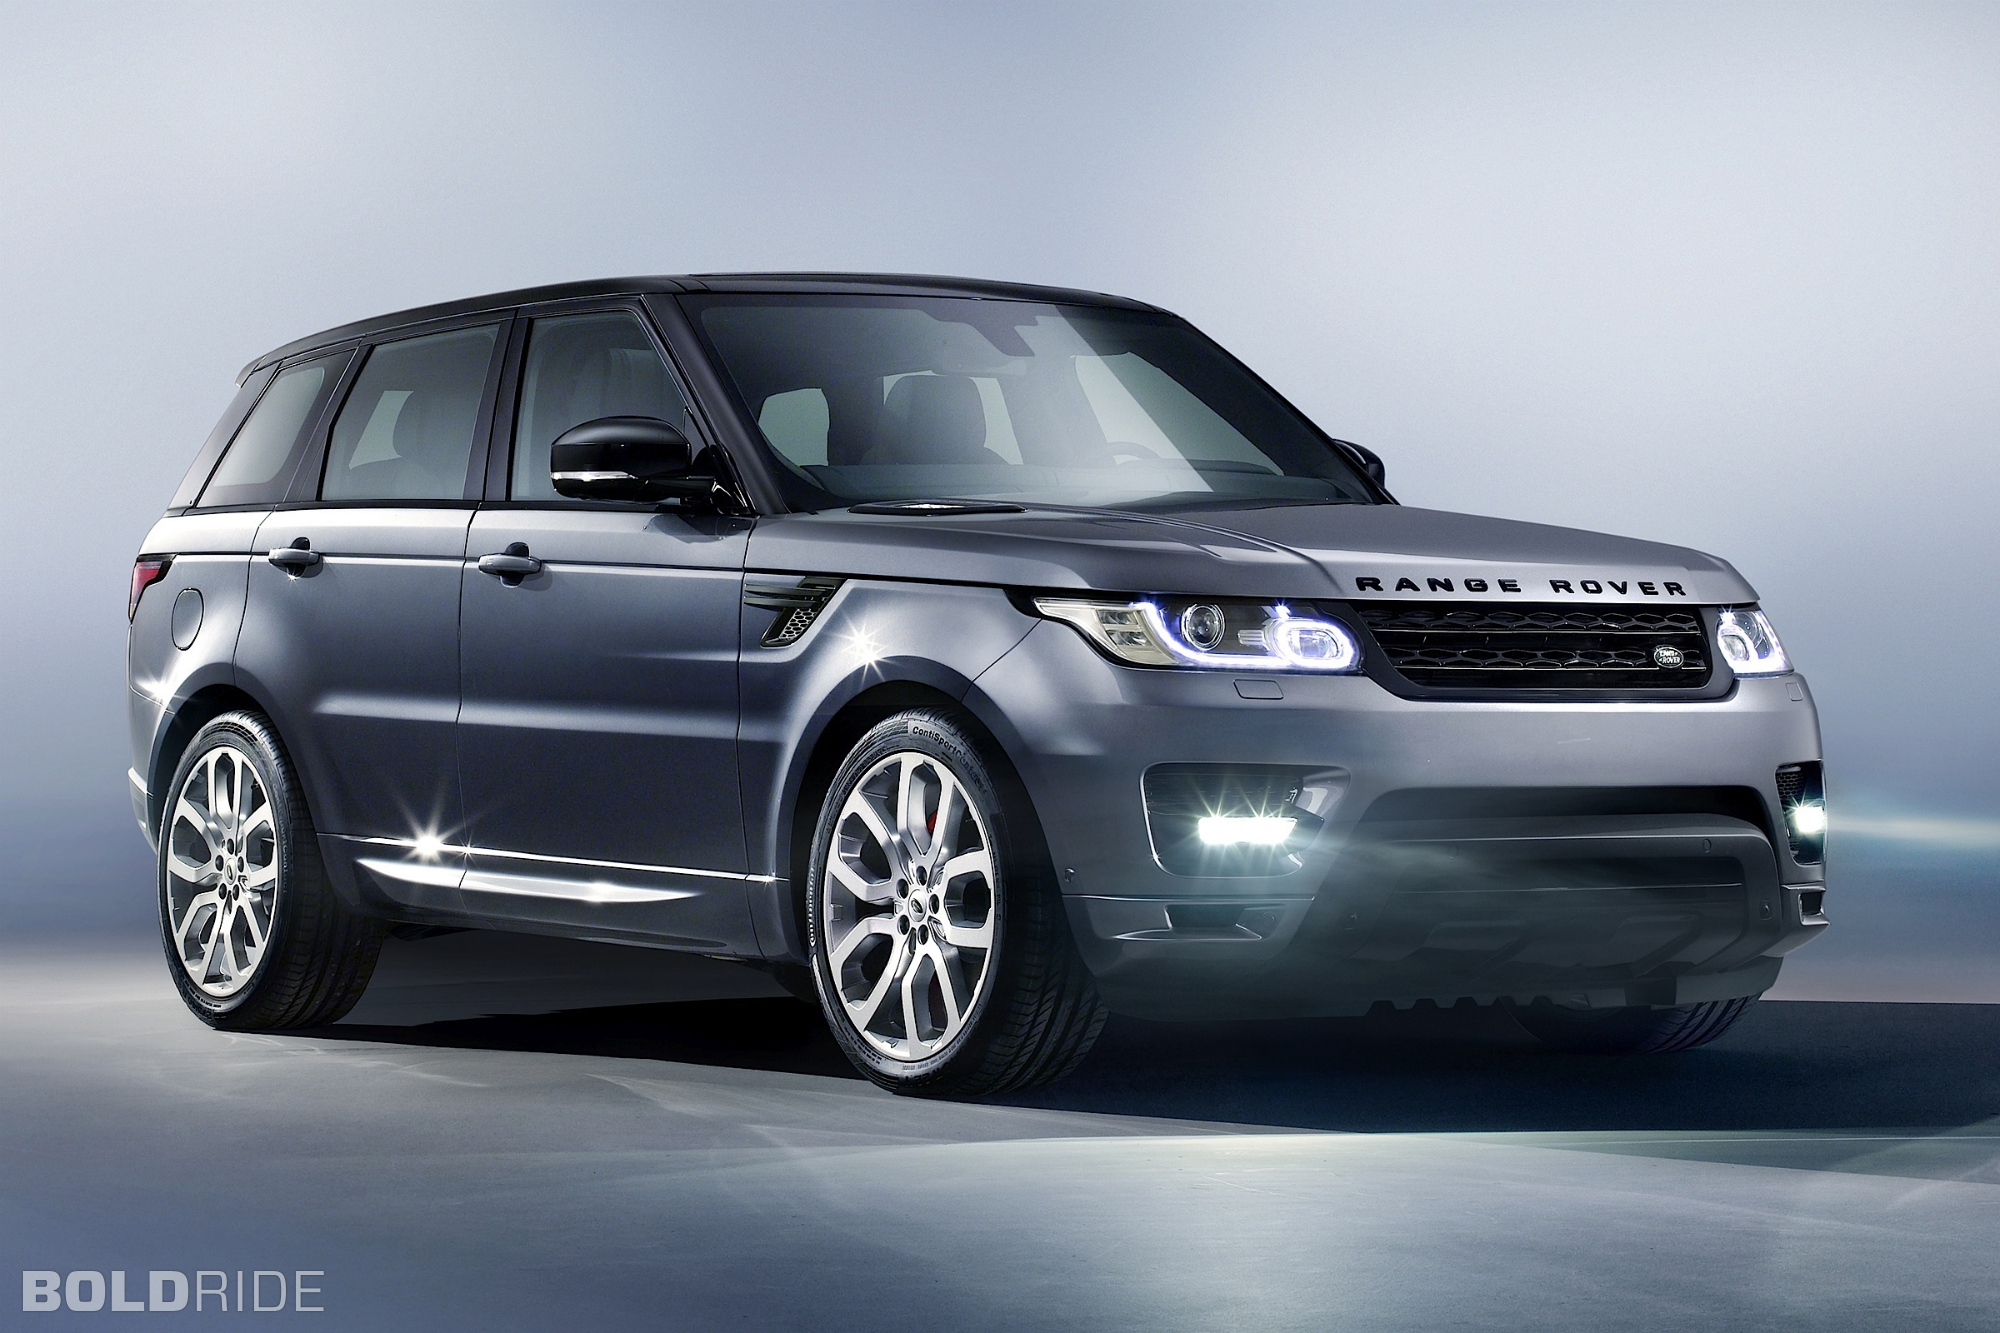 2014 Land Rover Range Rover Sport Information and photos